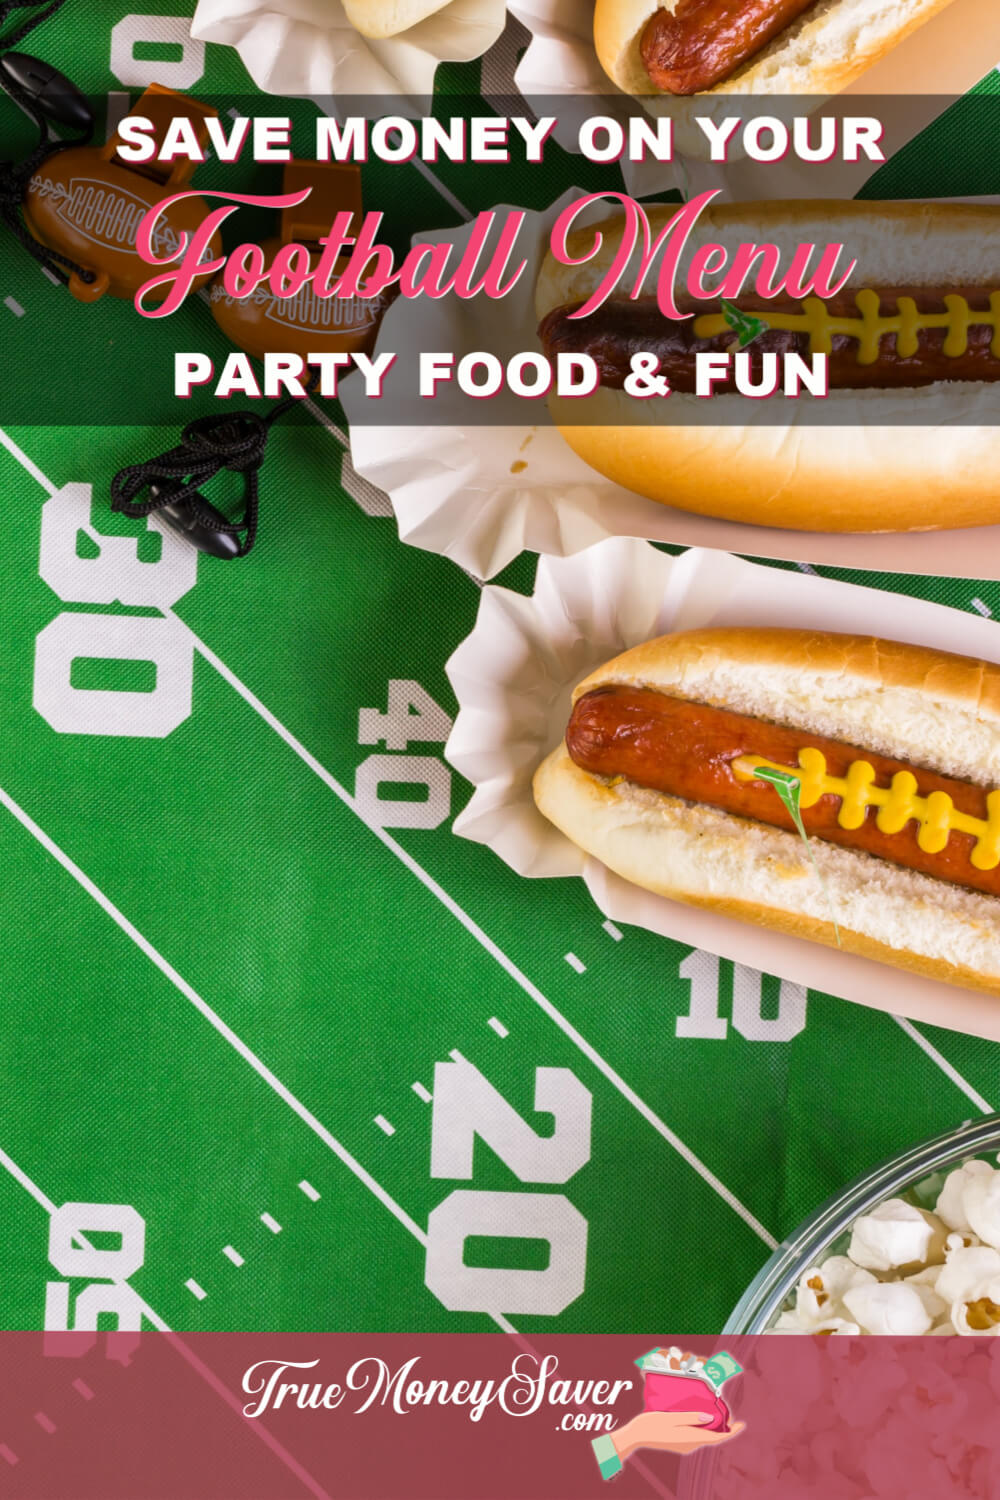 Are you having a football party? Then you need to check out these football party menu ideas that will help you save money and time! These game day menu ideas will make sure your guests will want to come back for more game day fun! Star your party here! 